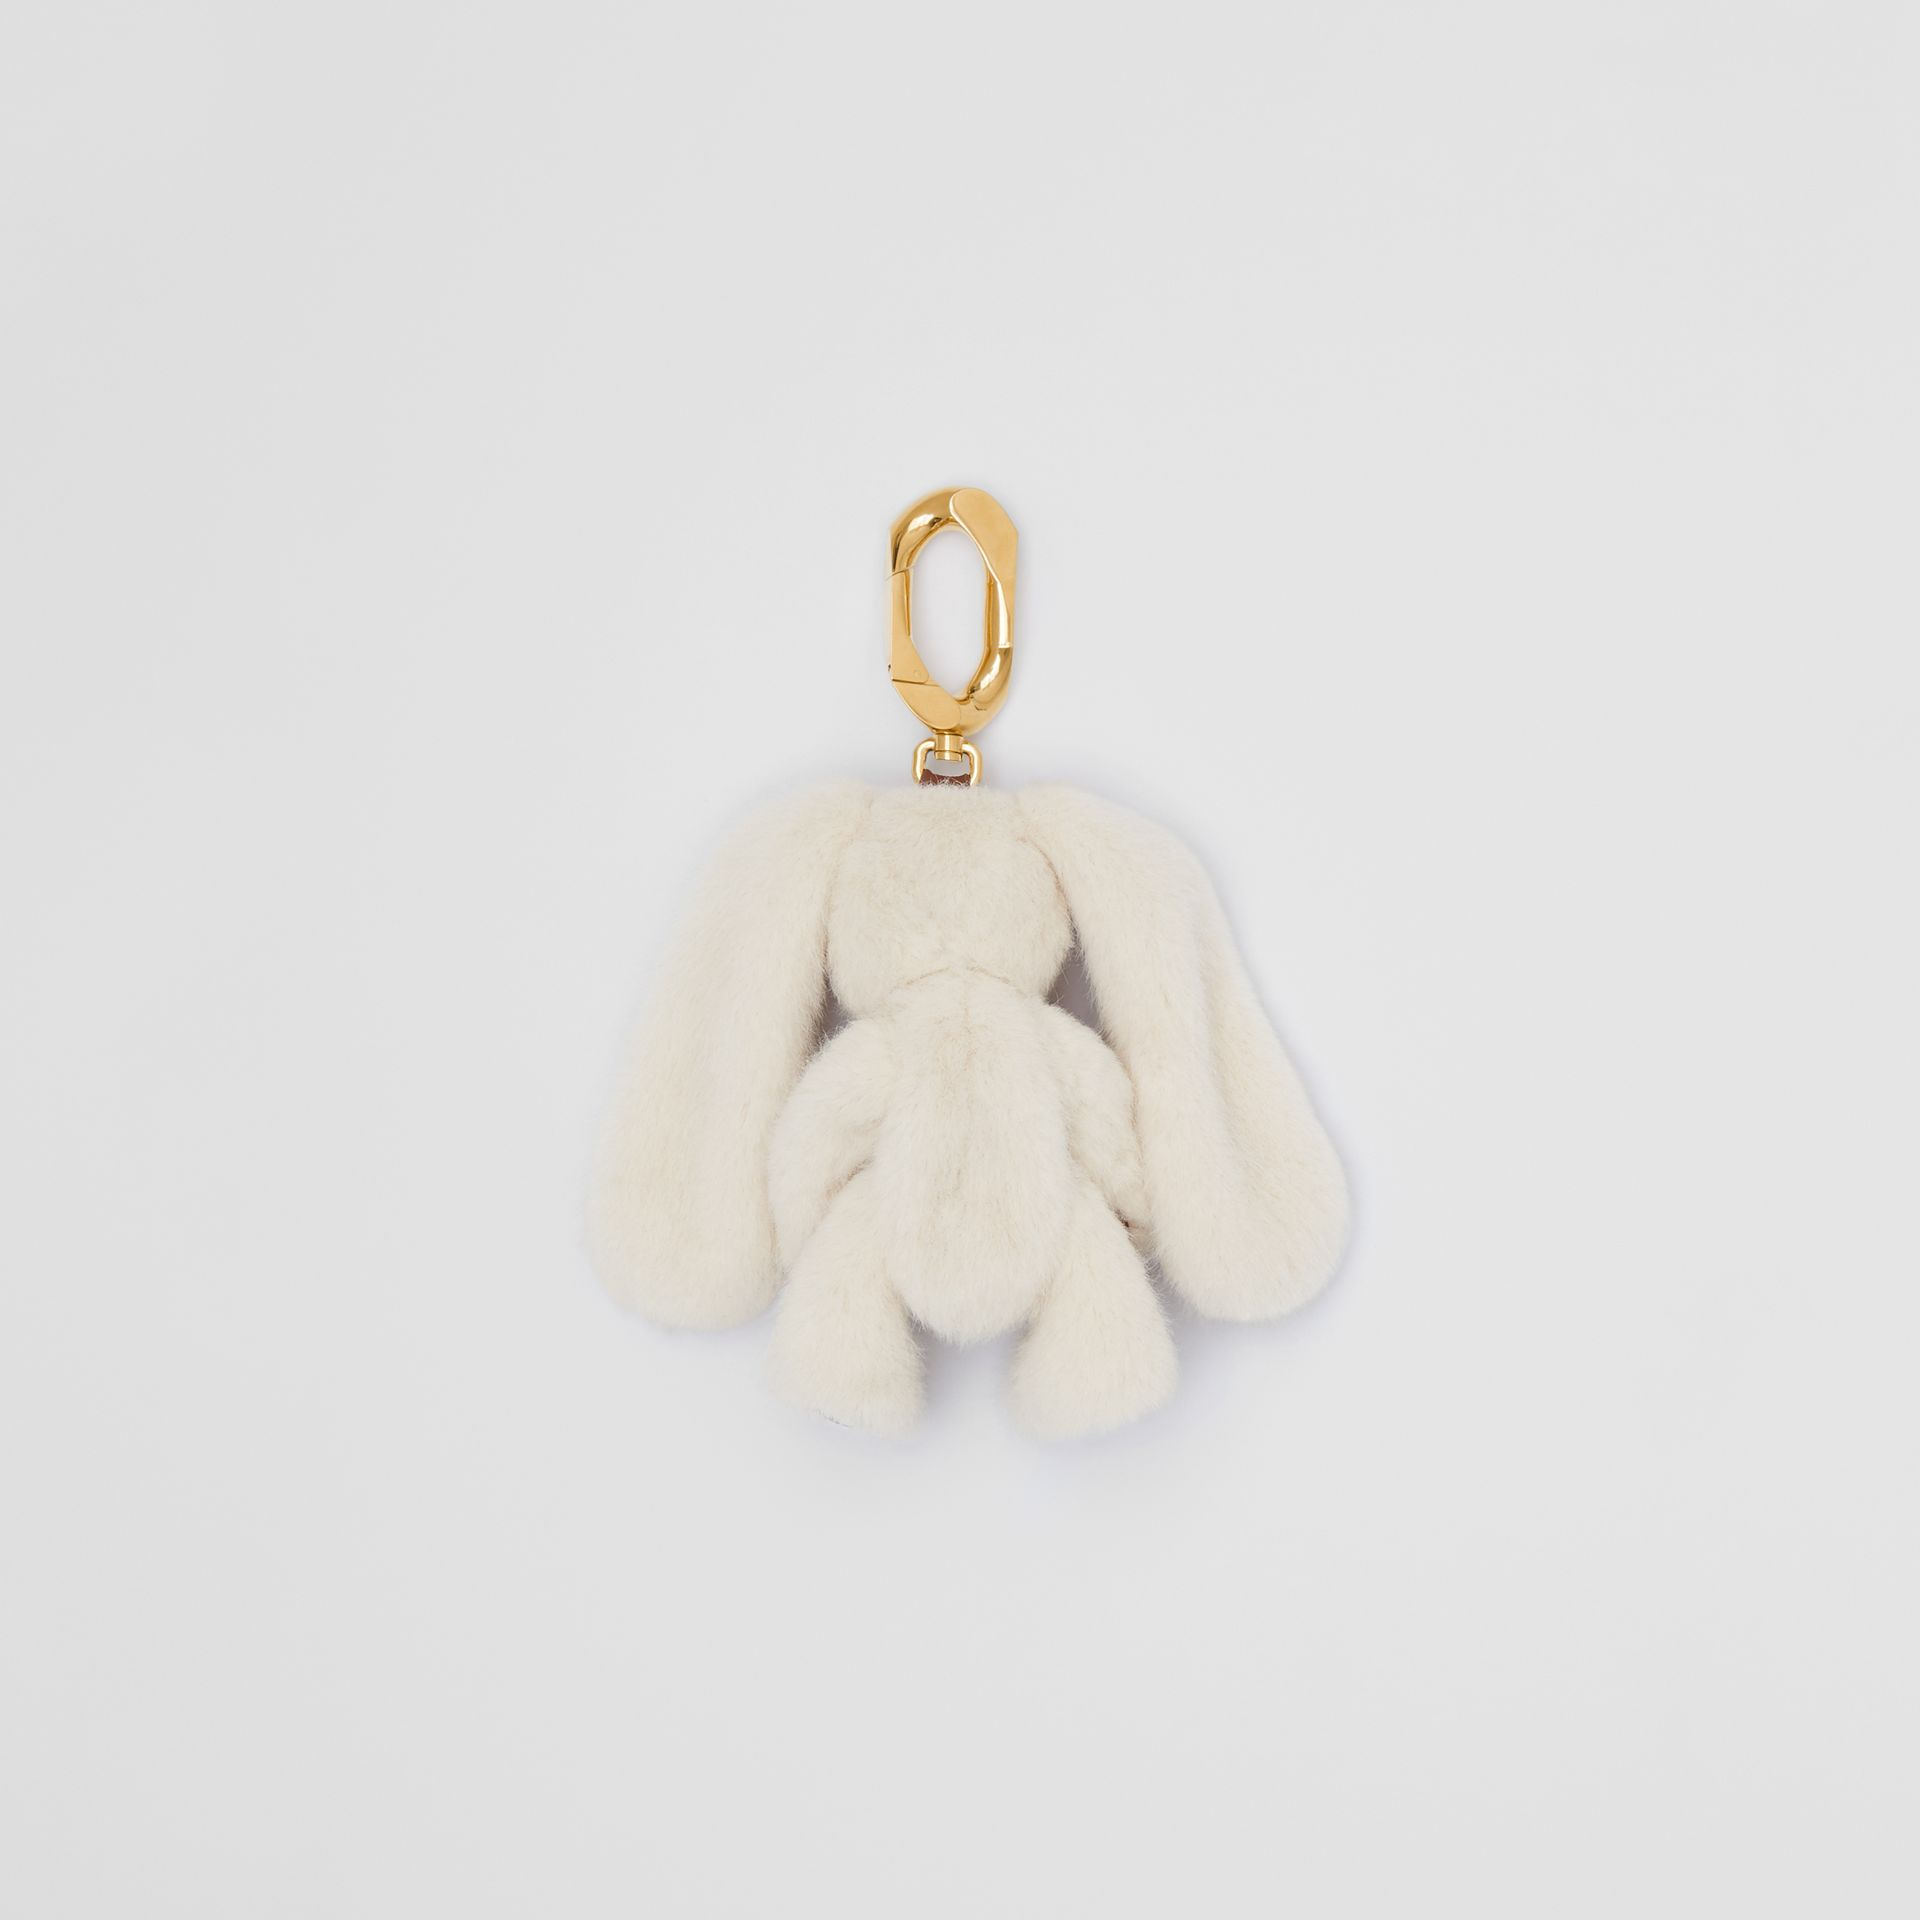 Embellished Faux Fur and Leather Rabbit Charm in Buttermilk   Burberry - gallery image 2